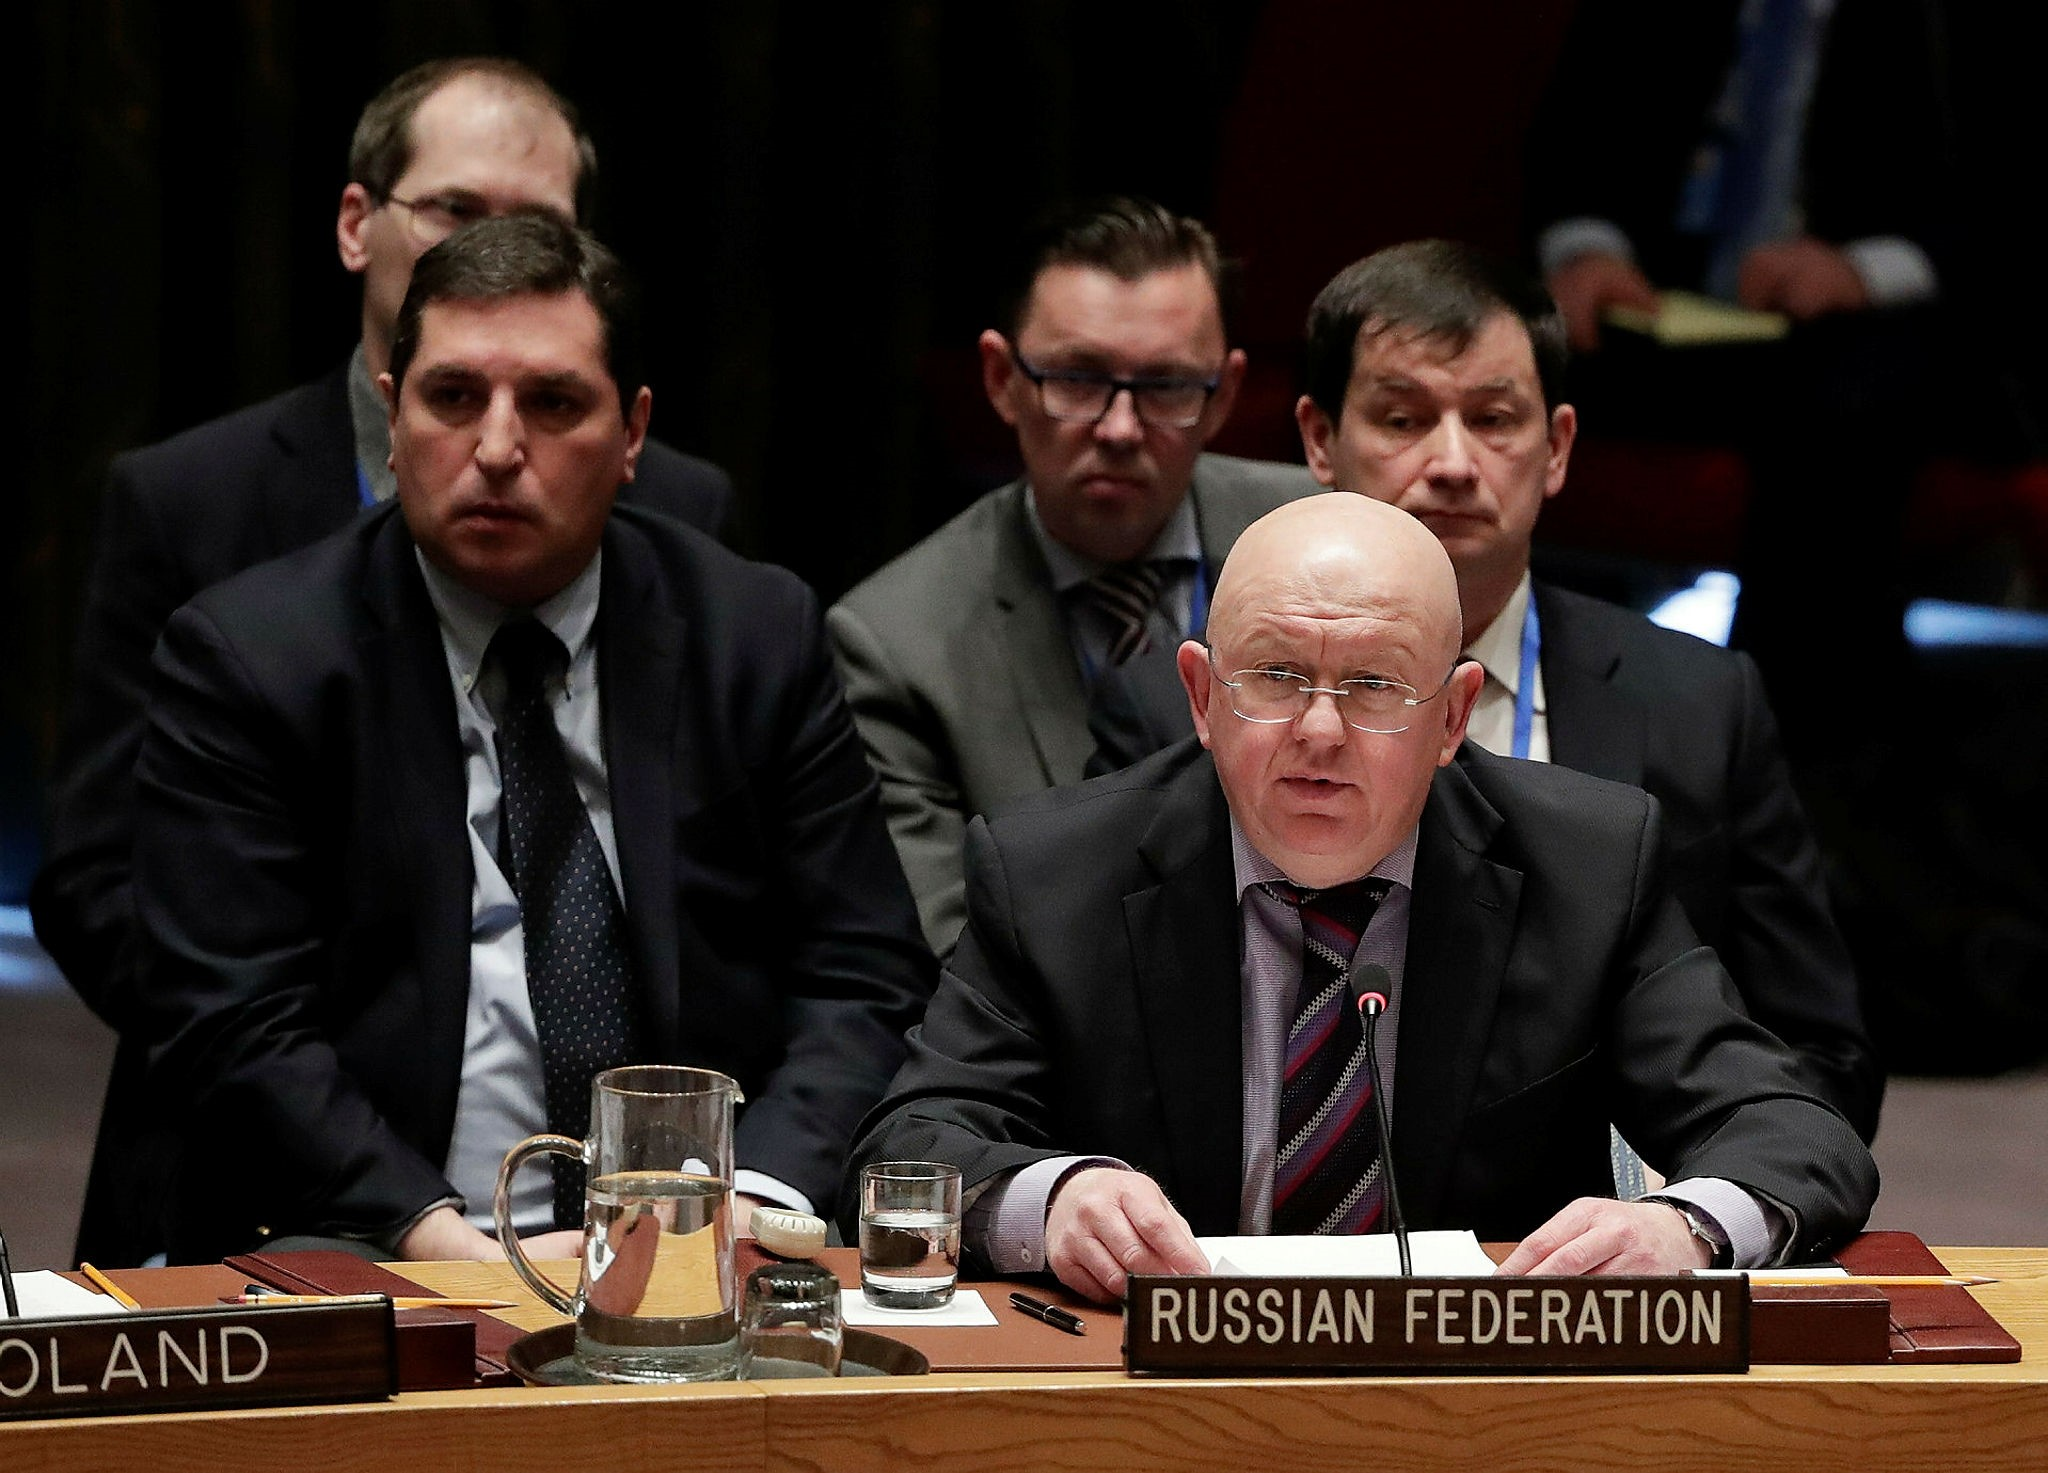 Russian Ambassador to the United Nations Vasily Nebenzya, right, talks before a vote during a Security Council meeting, Tuesday, April 10, 2018, at United Nations headquarters. (AP Photo)